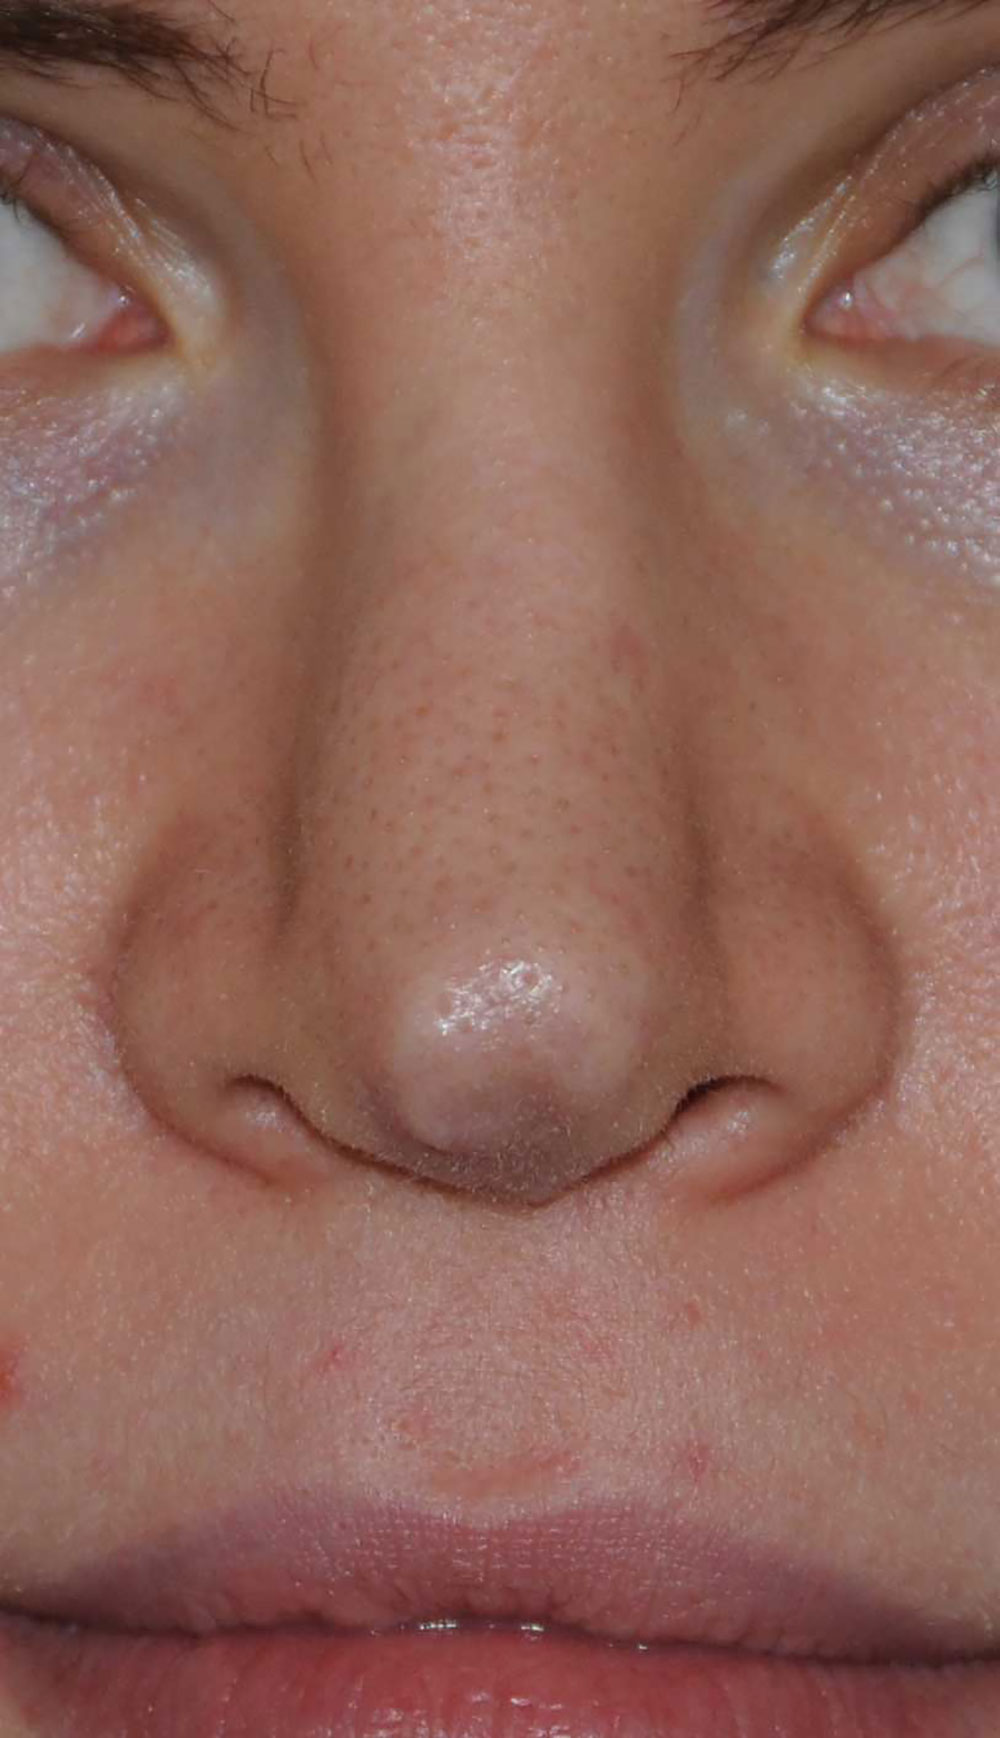 Revision Rhinoplasty for Droopy Tip, Tip Irregularities, Nasal Bridge Bump, Narrowed Right more than Left Nasal Airway, Collapsing Nostrils, and Crooked Nose